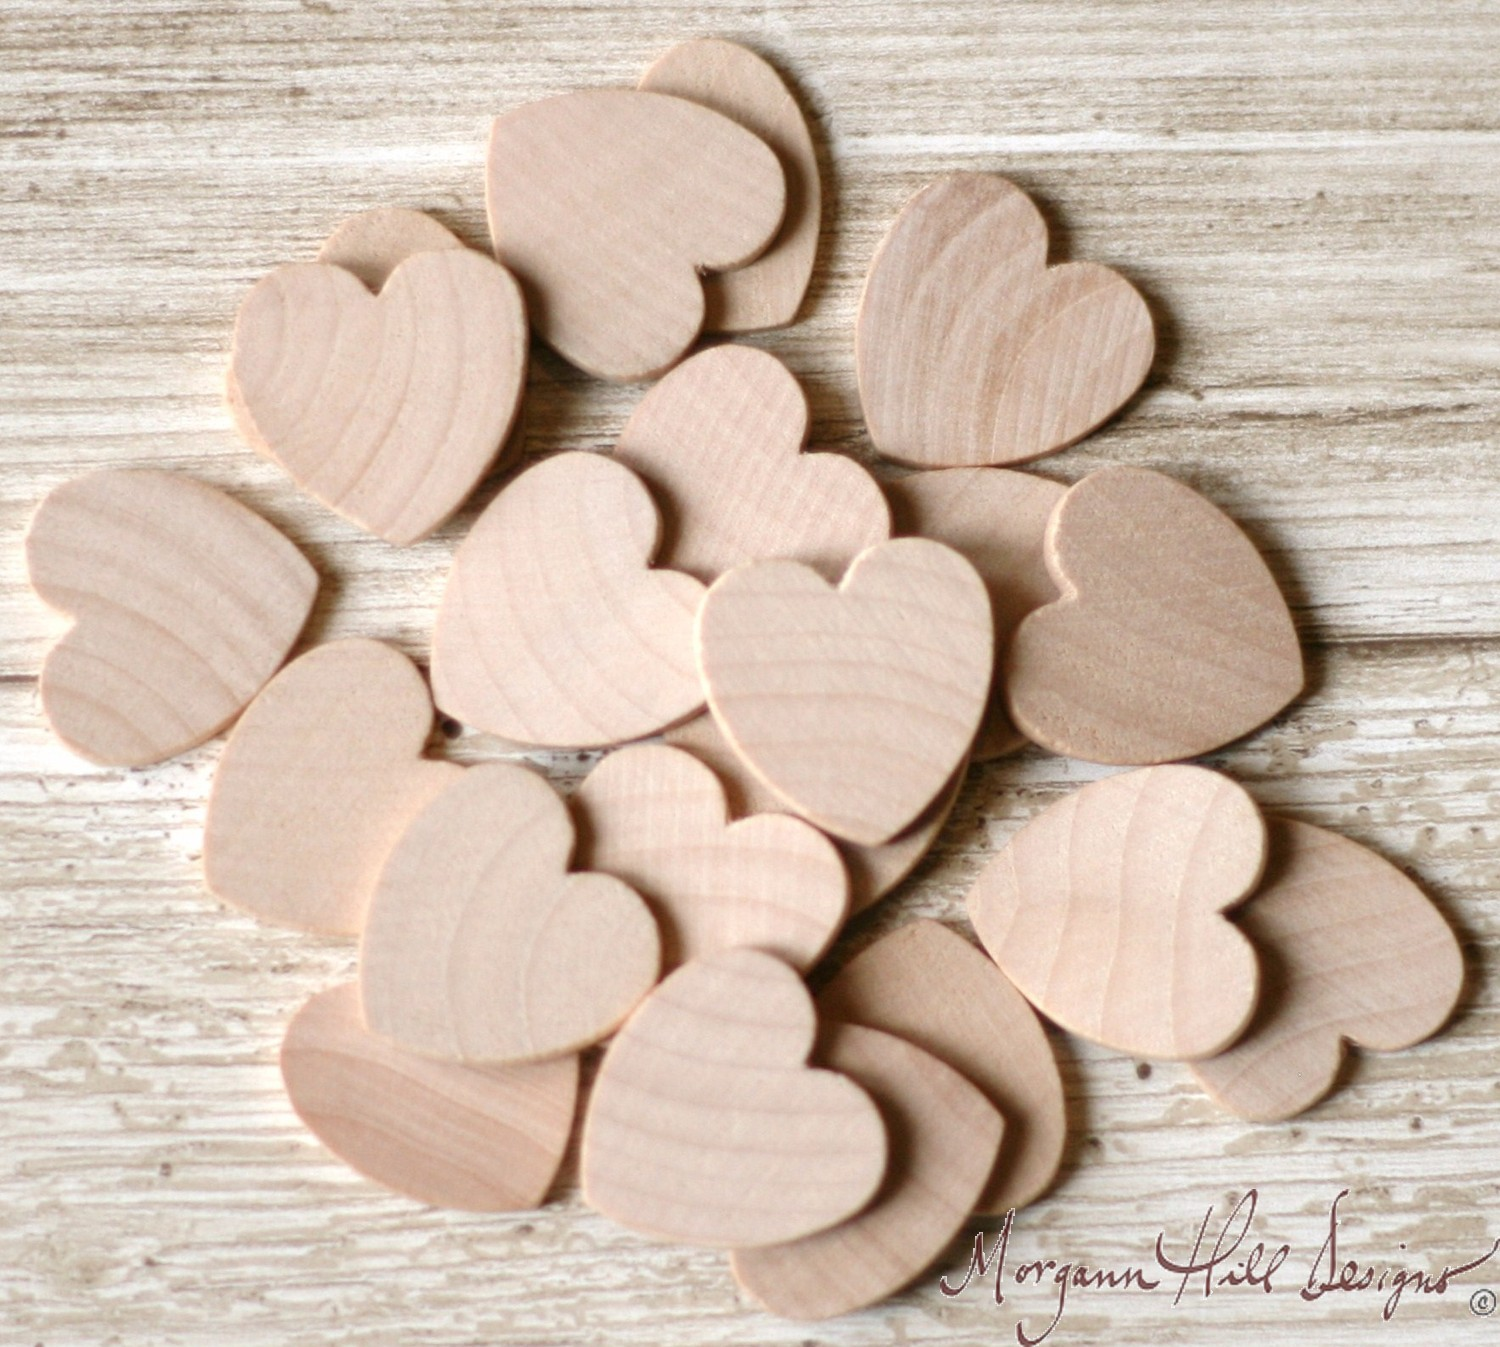 Unfinished wood craft products - Wood Heart Unfinished Wood Craft Supplies Diy Wedding Rustic Chic Item Number 140057